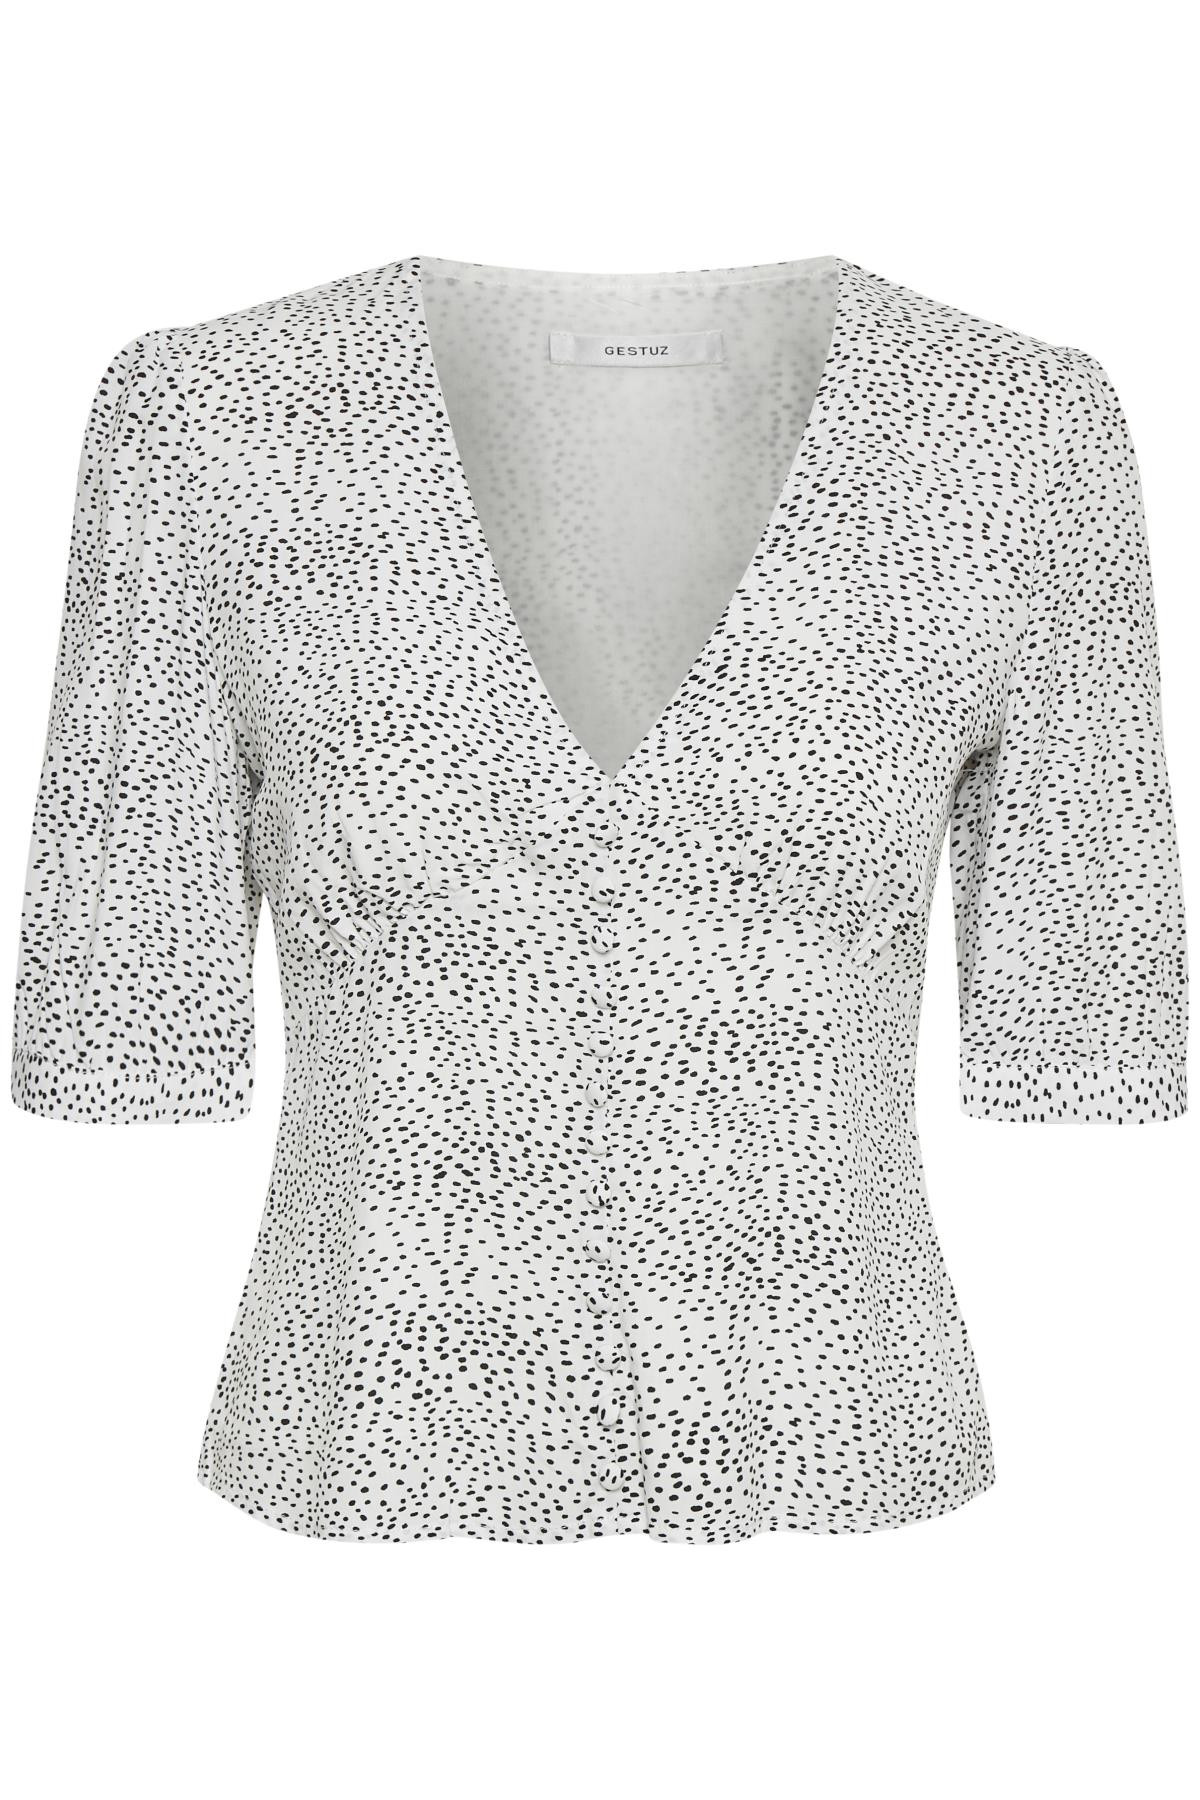 Image of   GESTUZ CATHRINGZ BLUSE (White With Black Dot 90269, 36)